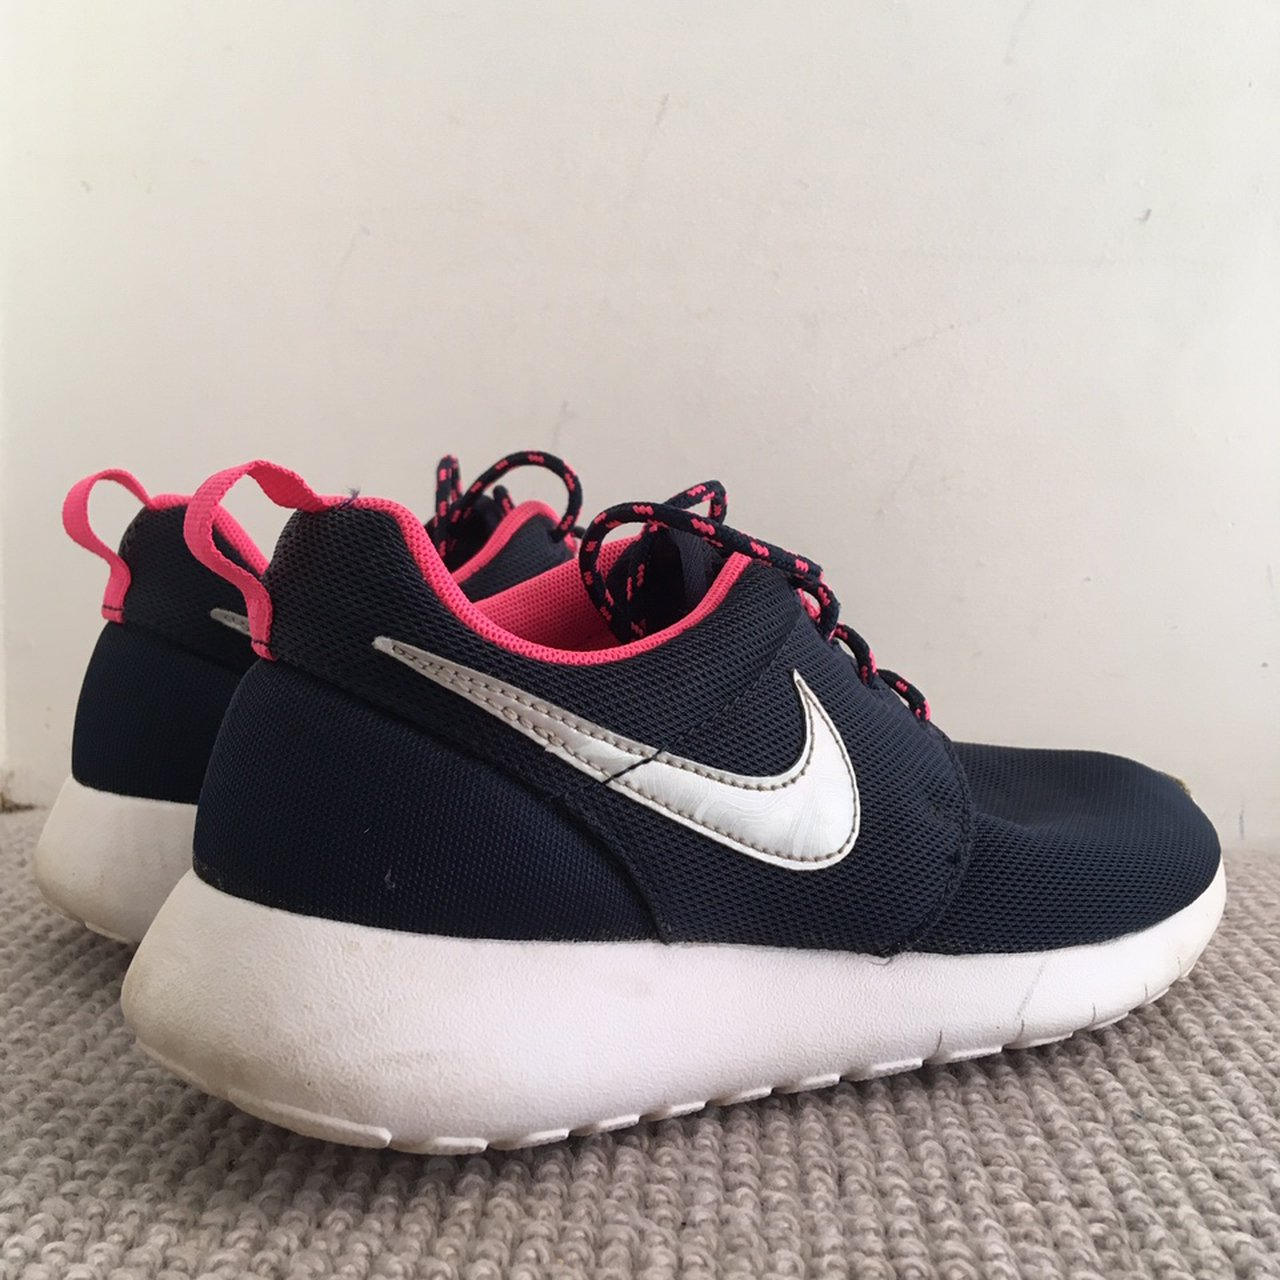 Nike navy blue and pink trainers with a